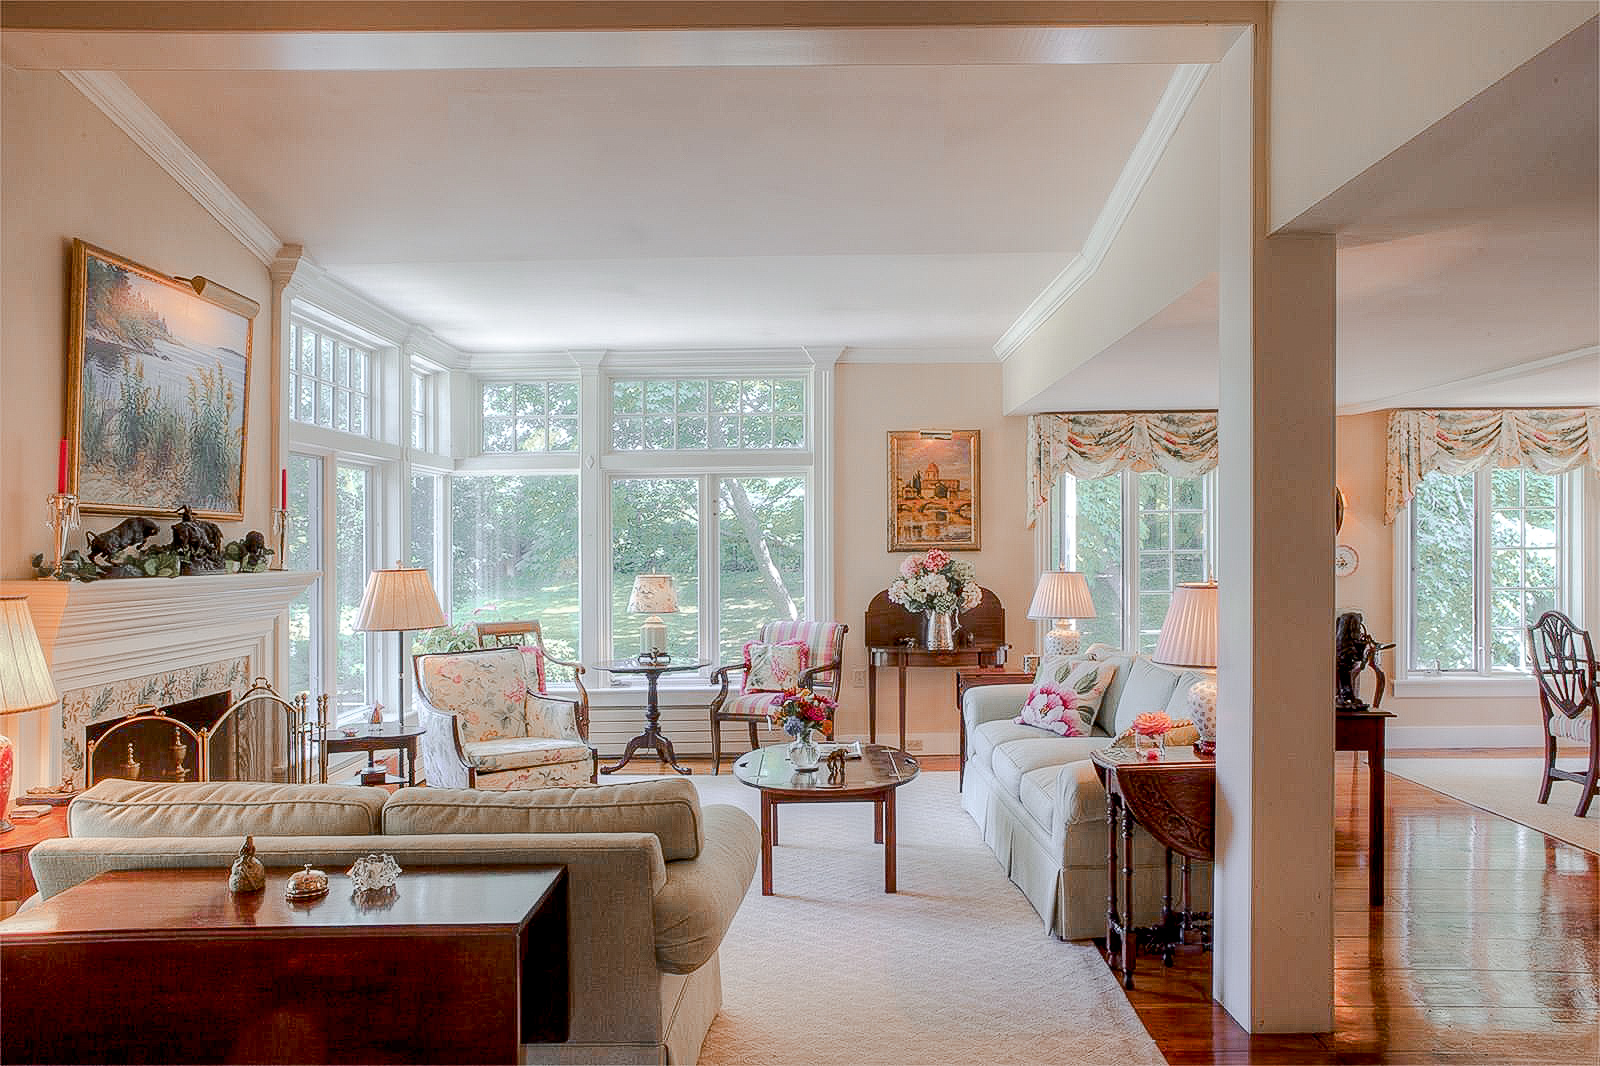 Luxe_and_Livable_Interior_Design_Blog_by_Maloney_Interiors_Portsmouth_Rhode_Island_Kimberly_Fleming_Real_Estate_14.jpg